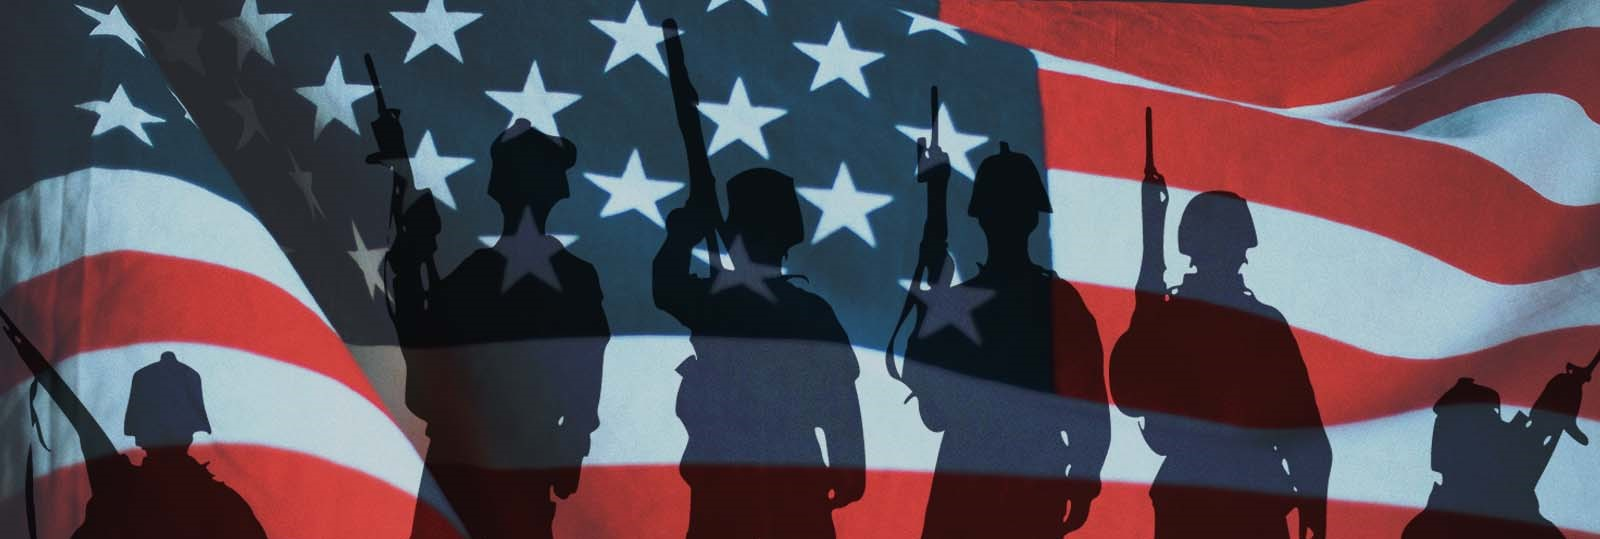 graphic of american flag with soldier silhouettes